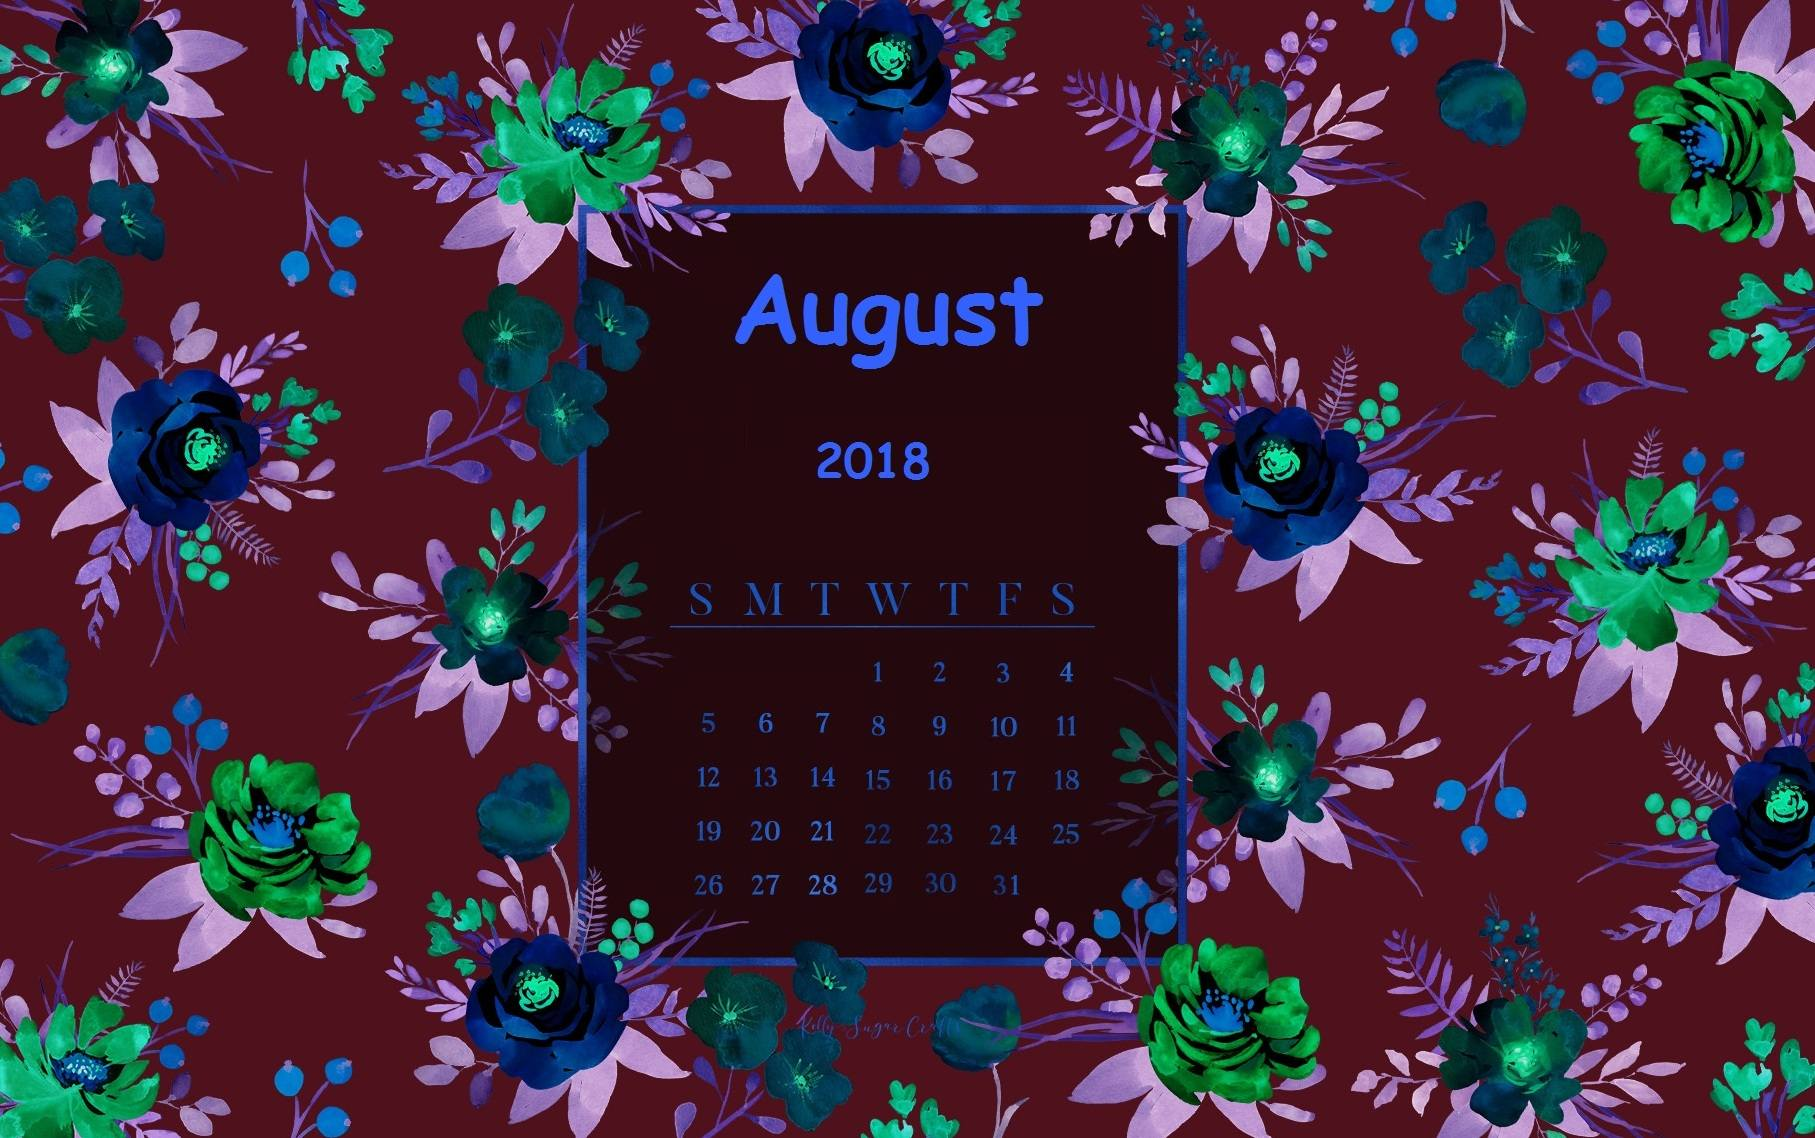 August 2018 Flower Calendar Wallpaper